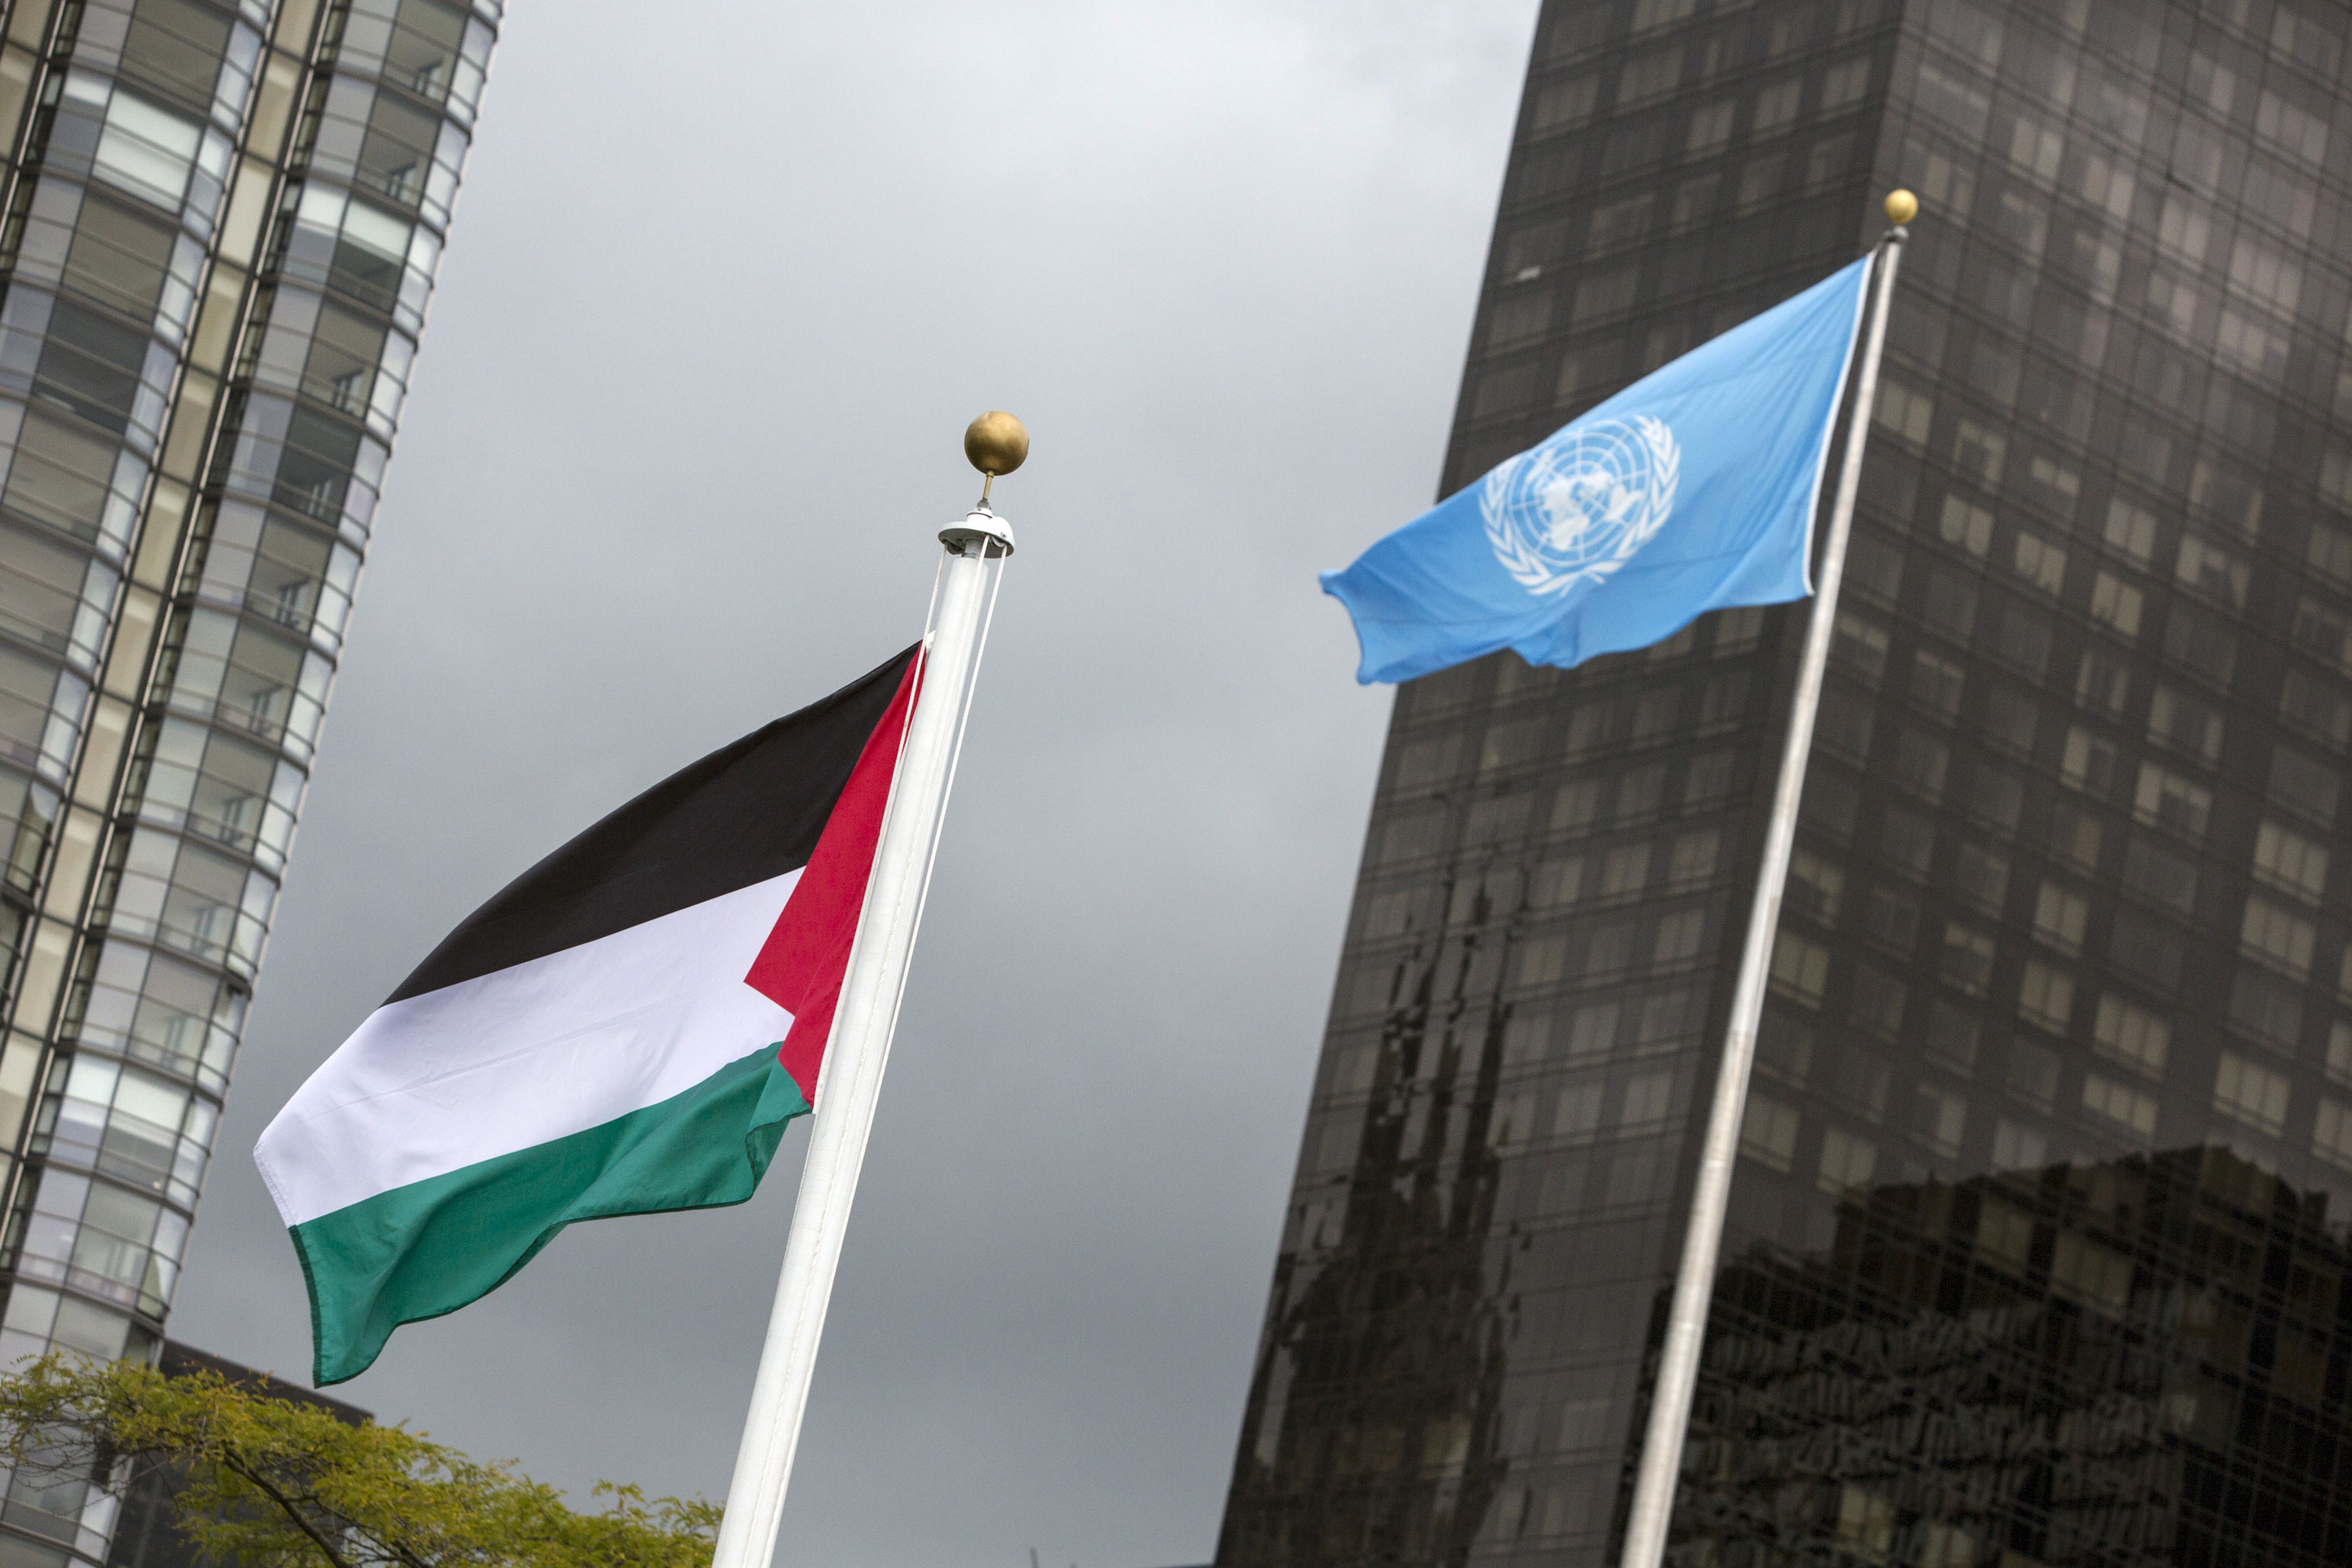 The Palestinian flag was raised at the UN headquarters for the first time last year.